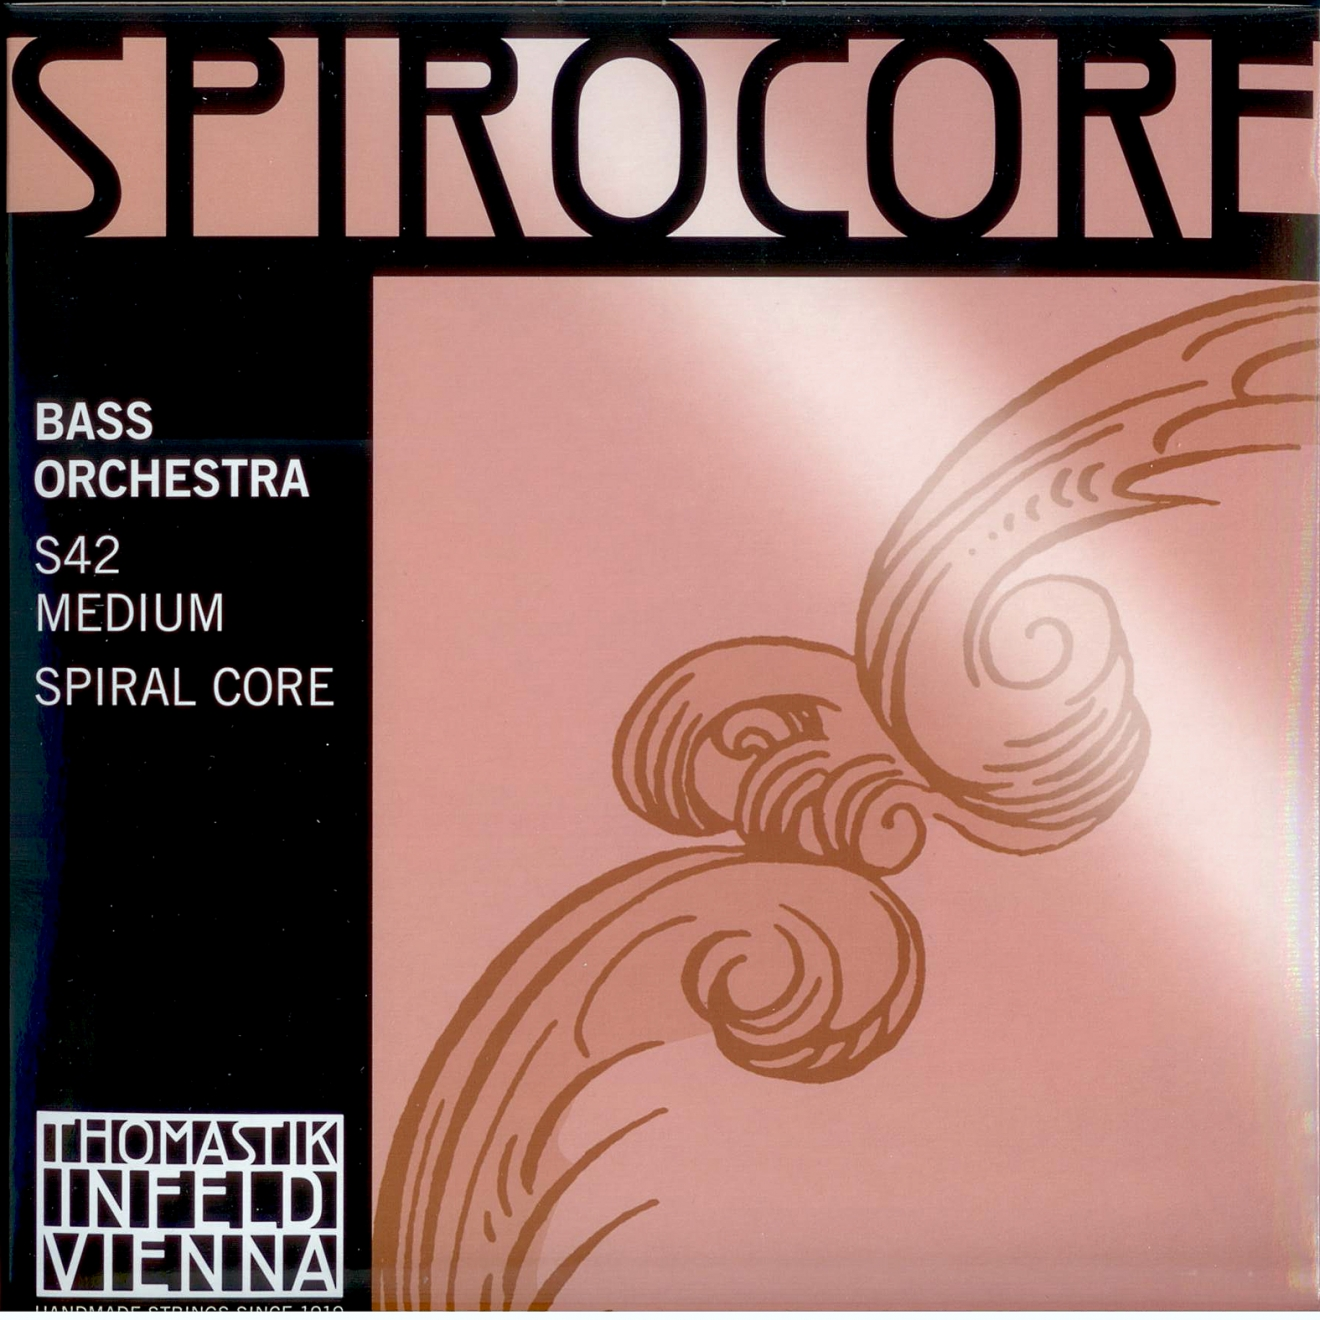 THOMASTIK Spirocore Orchester Bass D